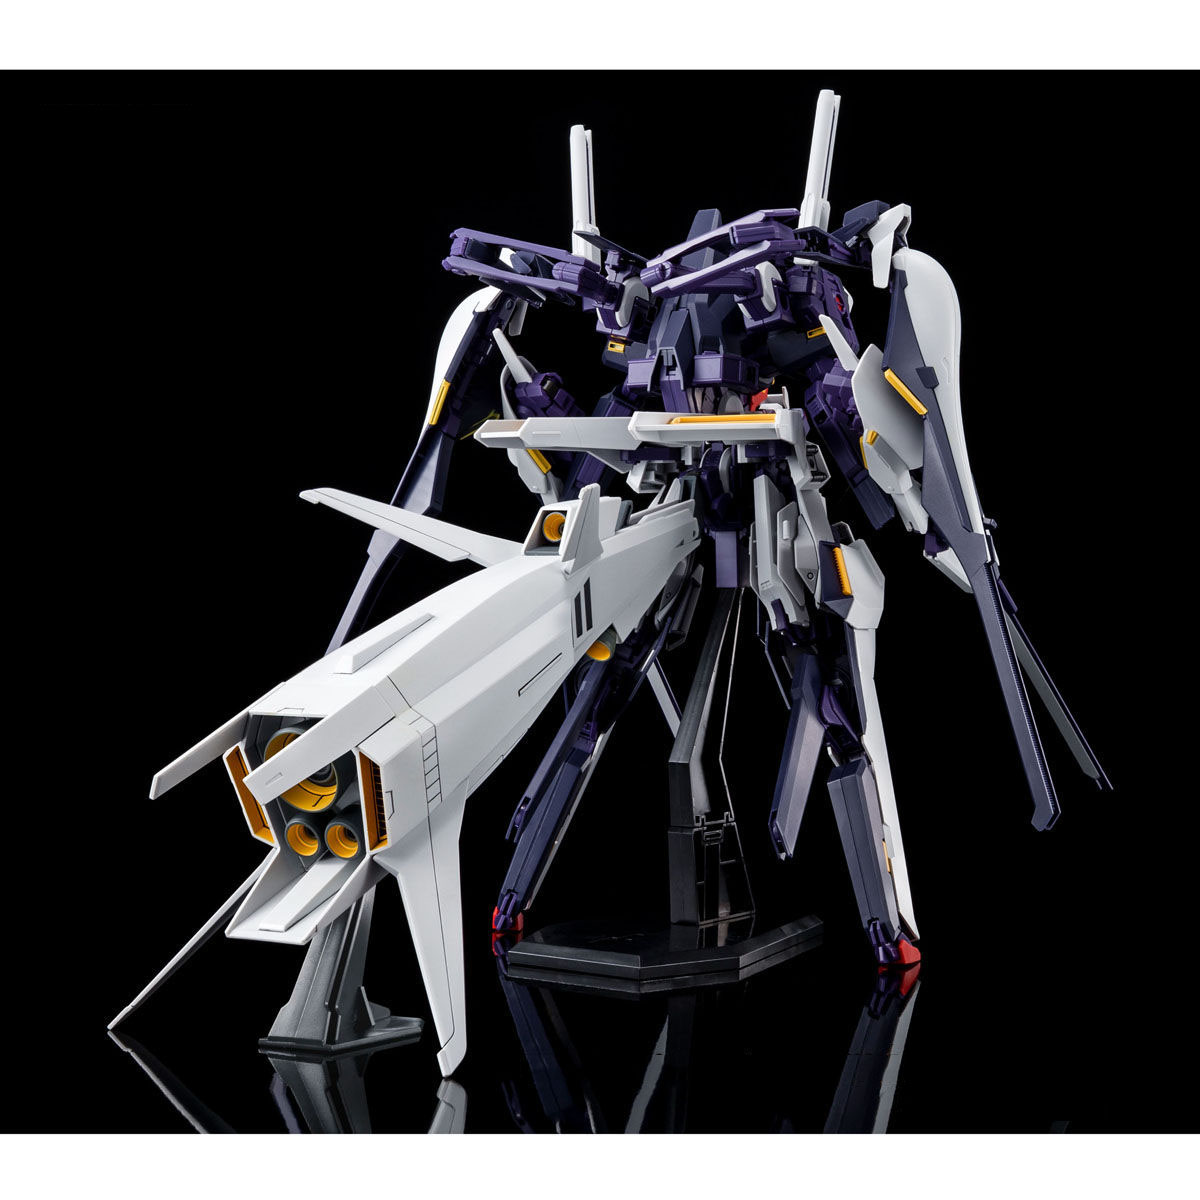 HG 1/144 BOOSTER EXPANSION SET FOR CRUISER MODE (ADVANCE OF Z THE FLAG OF TITANS) [Mar 2021 Delivery]